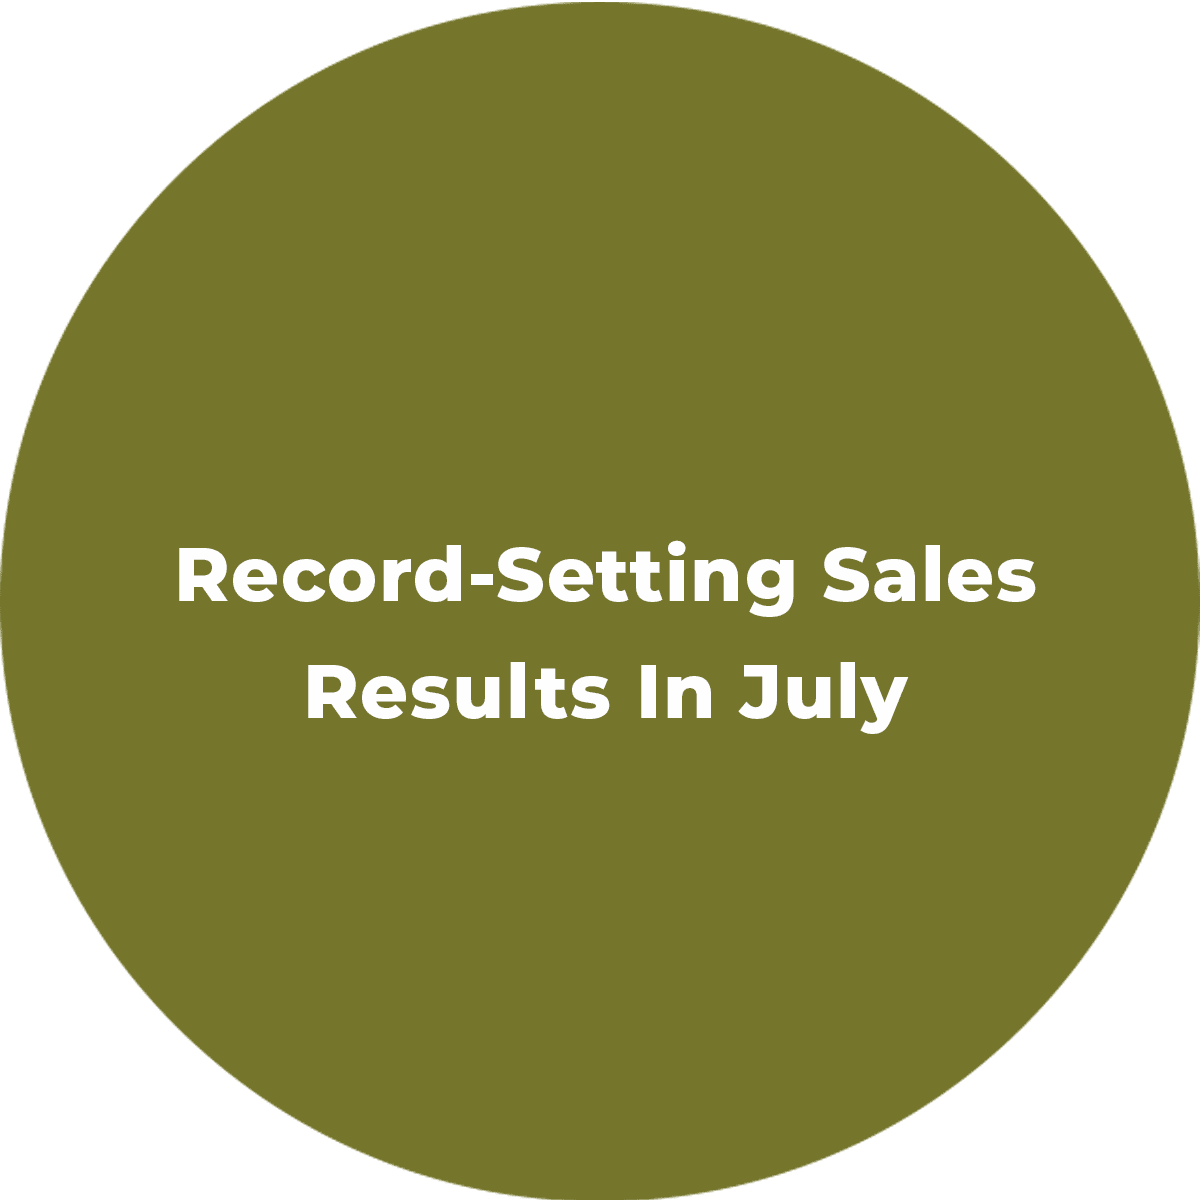 Record-Setting Sales Results In July